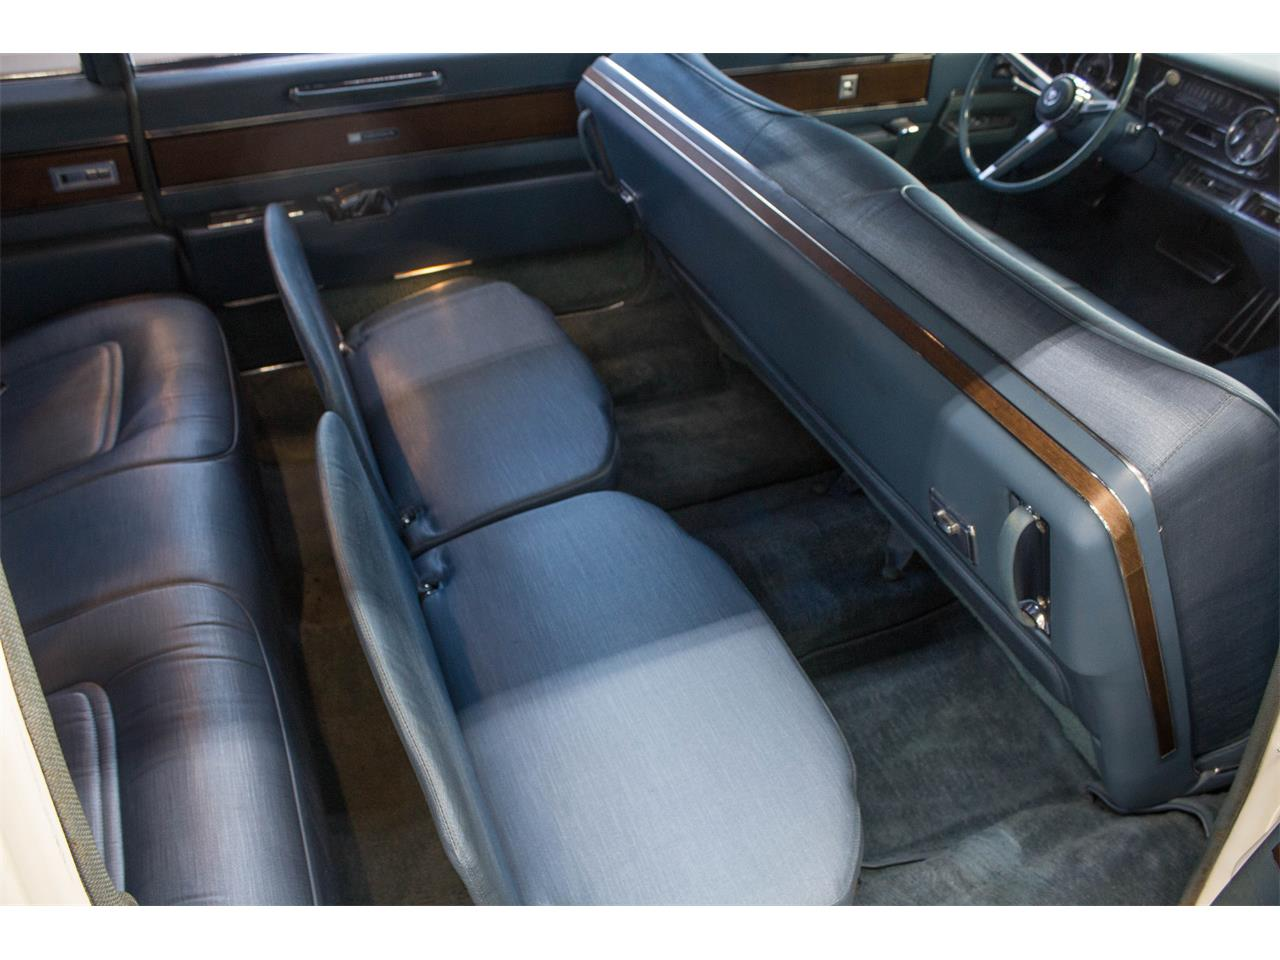 Large Picture of Classic '66 Cadillac Fleetwood Limousine - $49,995.00 - NKXQ